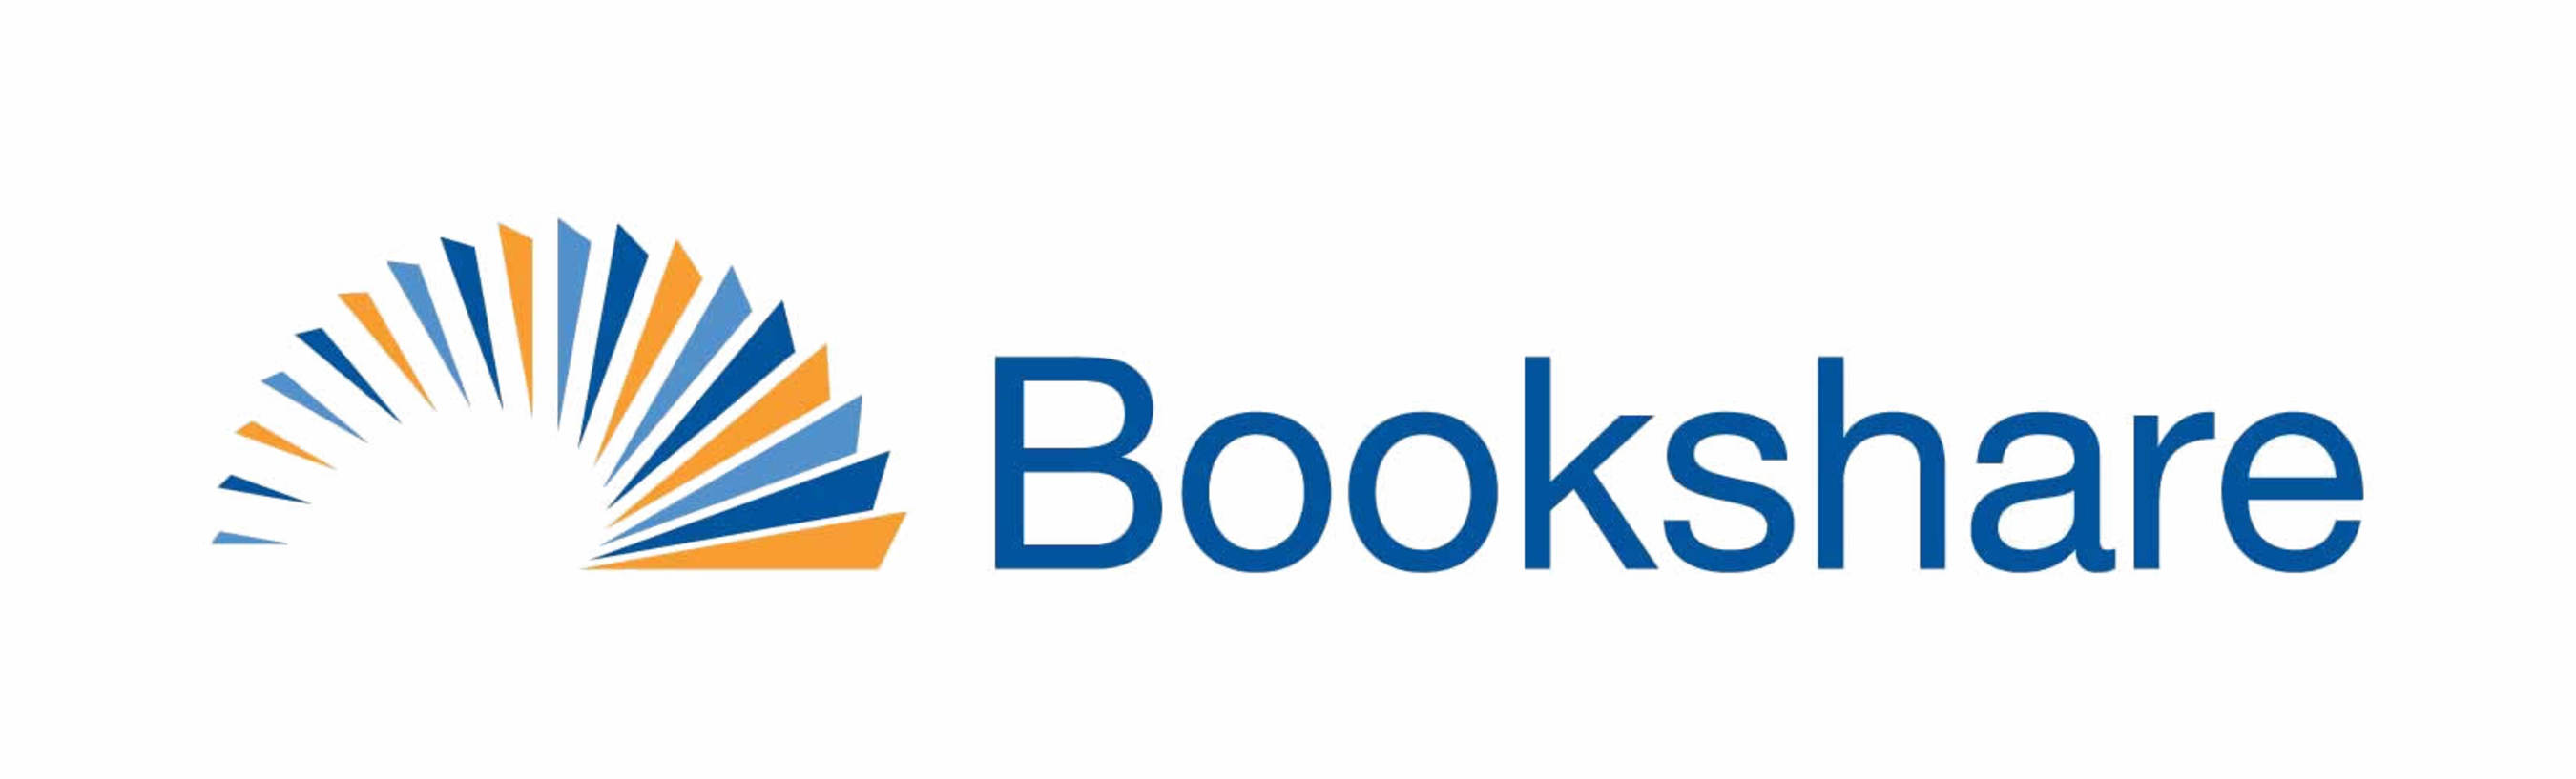 bookshare living students disabilities skills library scurry rosser assistive experiences gain technologies authentic independent help arts language sevier county english